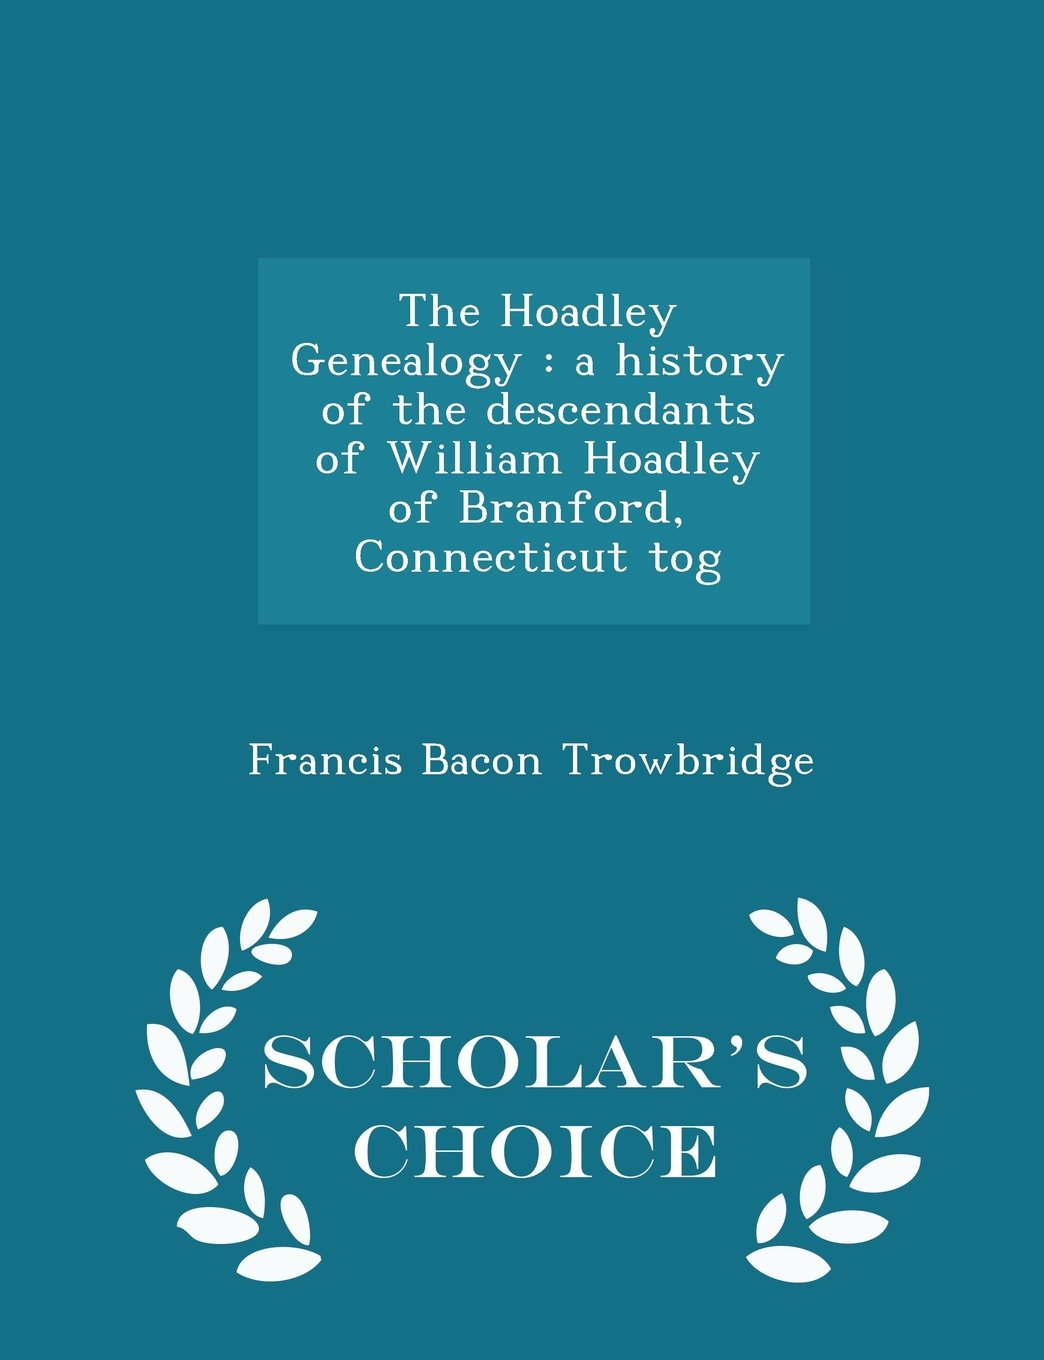 The Hoadley Genealogy: a history of the descendants of William Hoadley of Branford, Connecticut tog - Scholar's Choice Edition